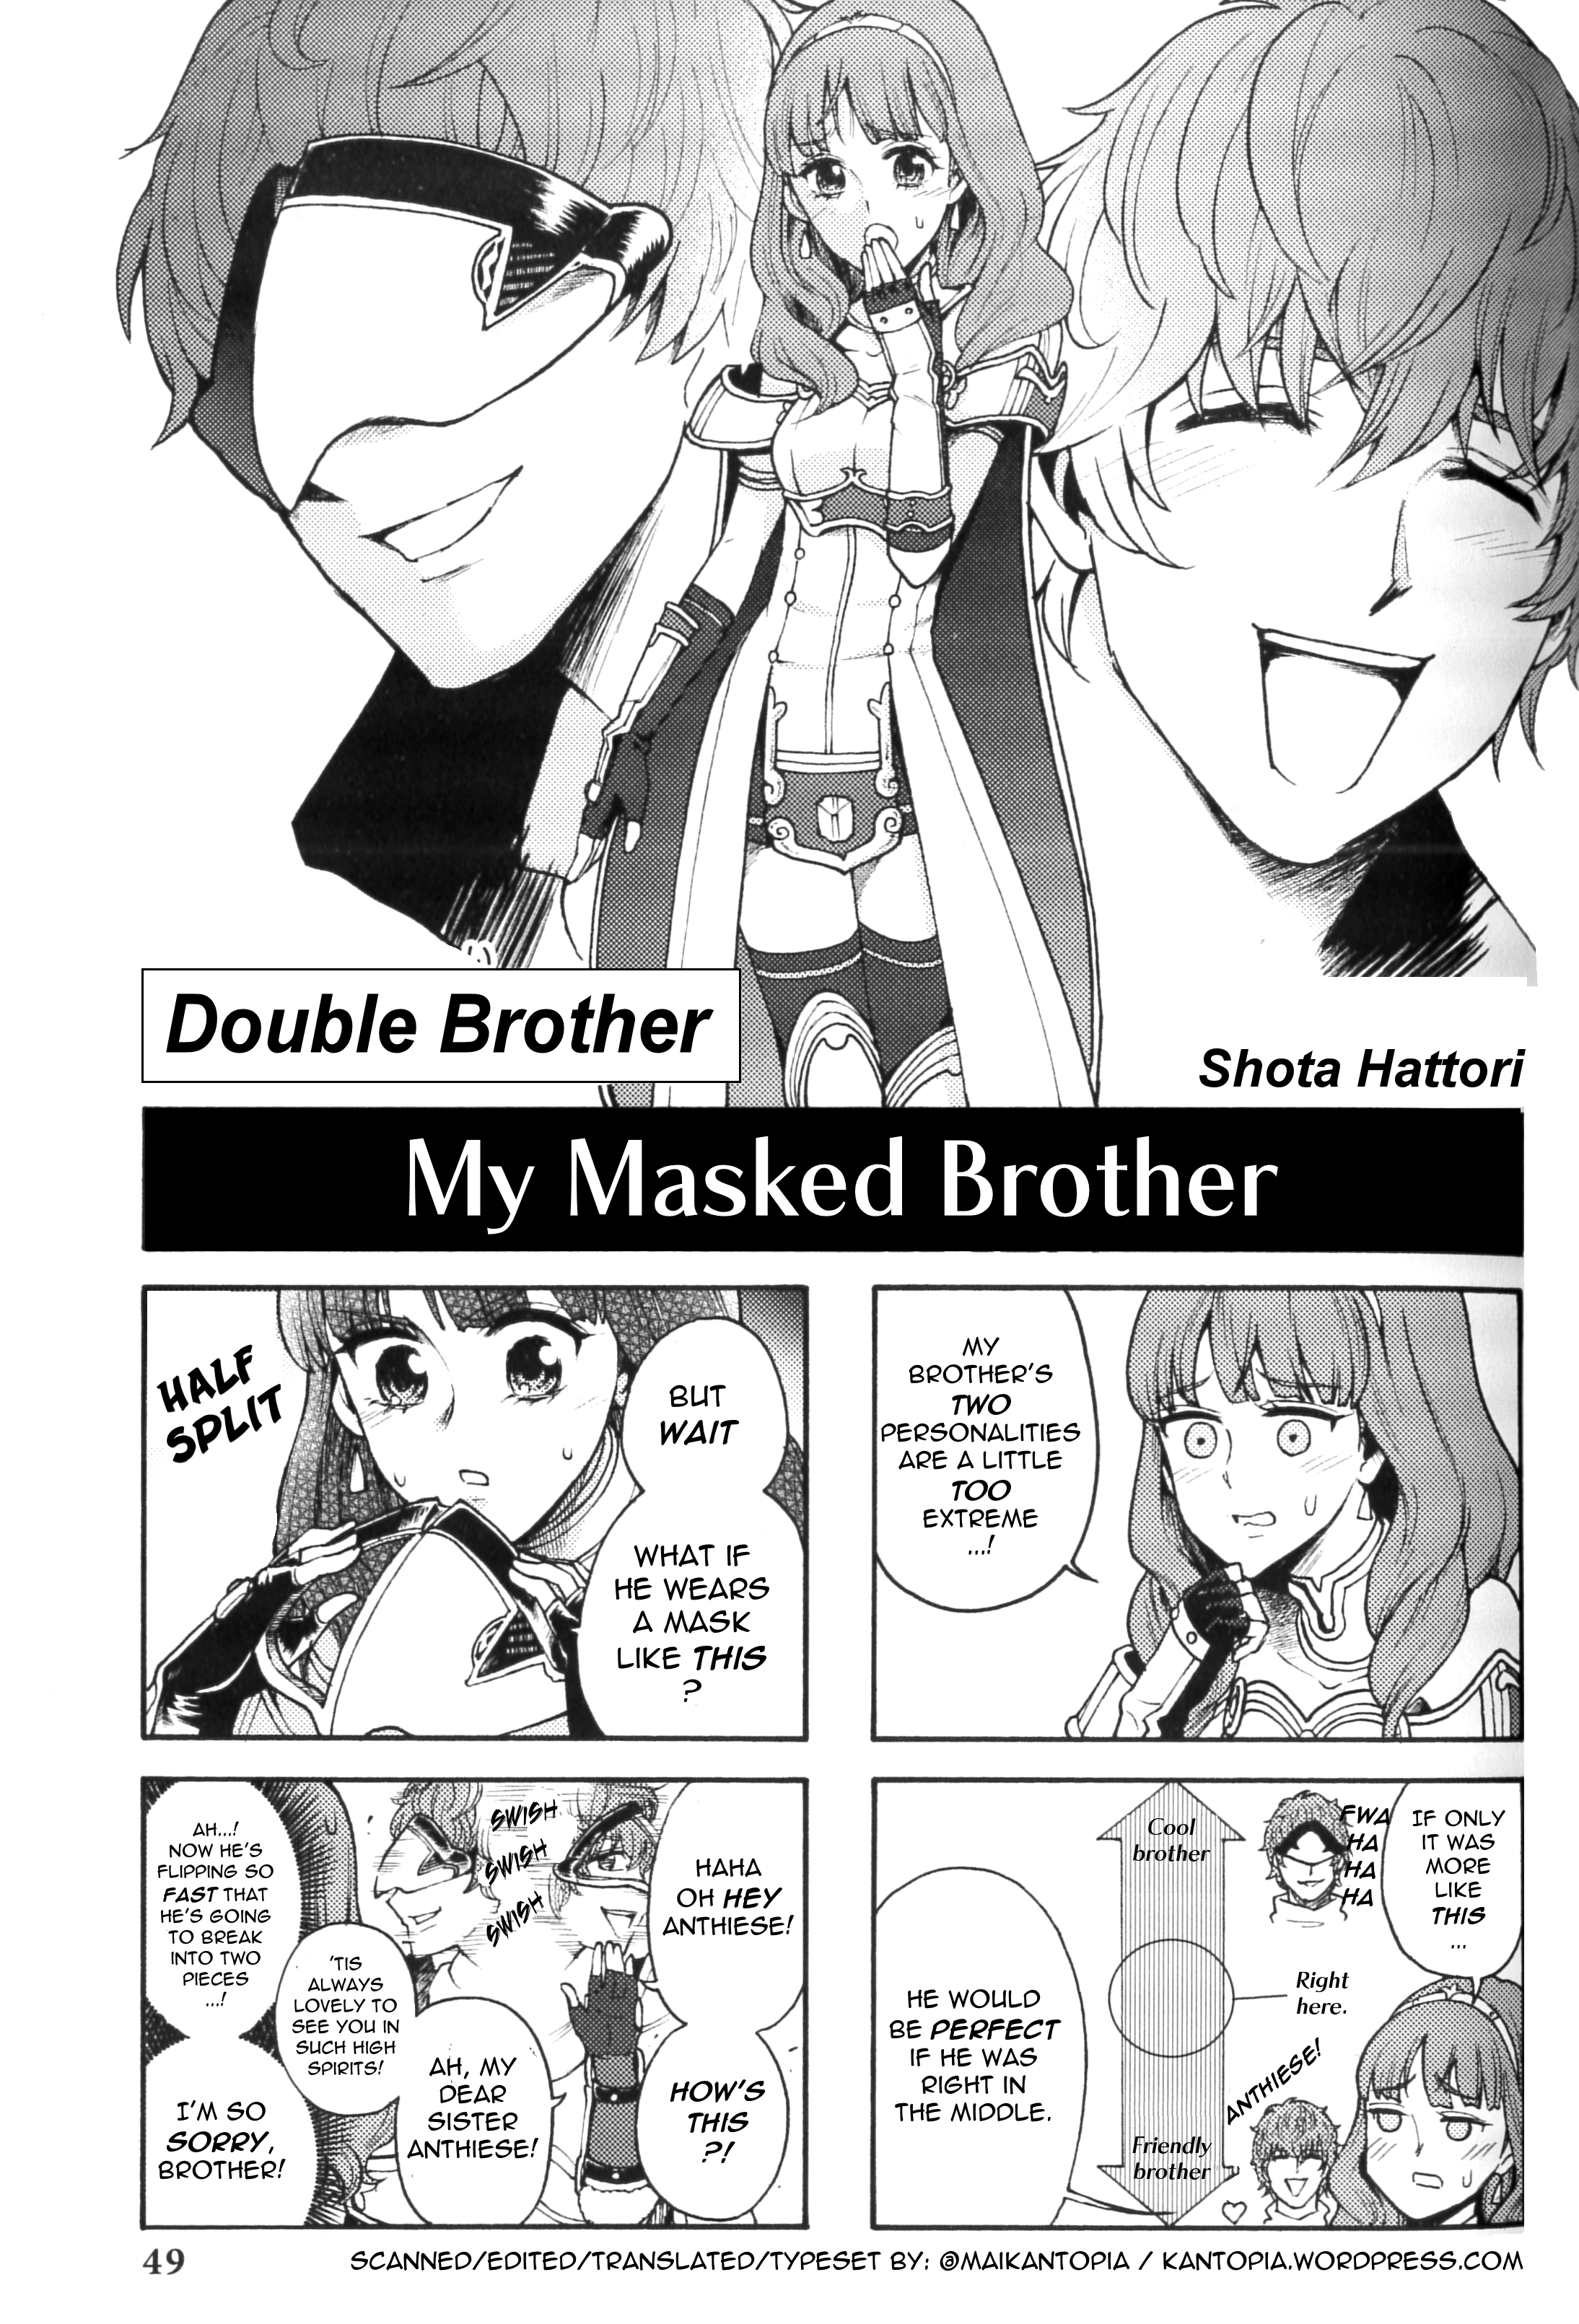 ac1 fire emblem echoes 4koma collection (page 1 of 16) fire emblem